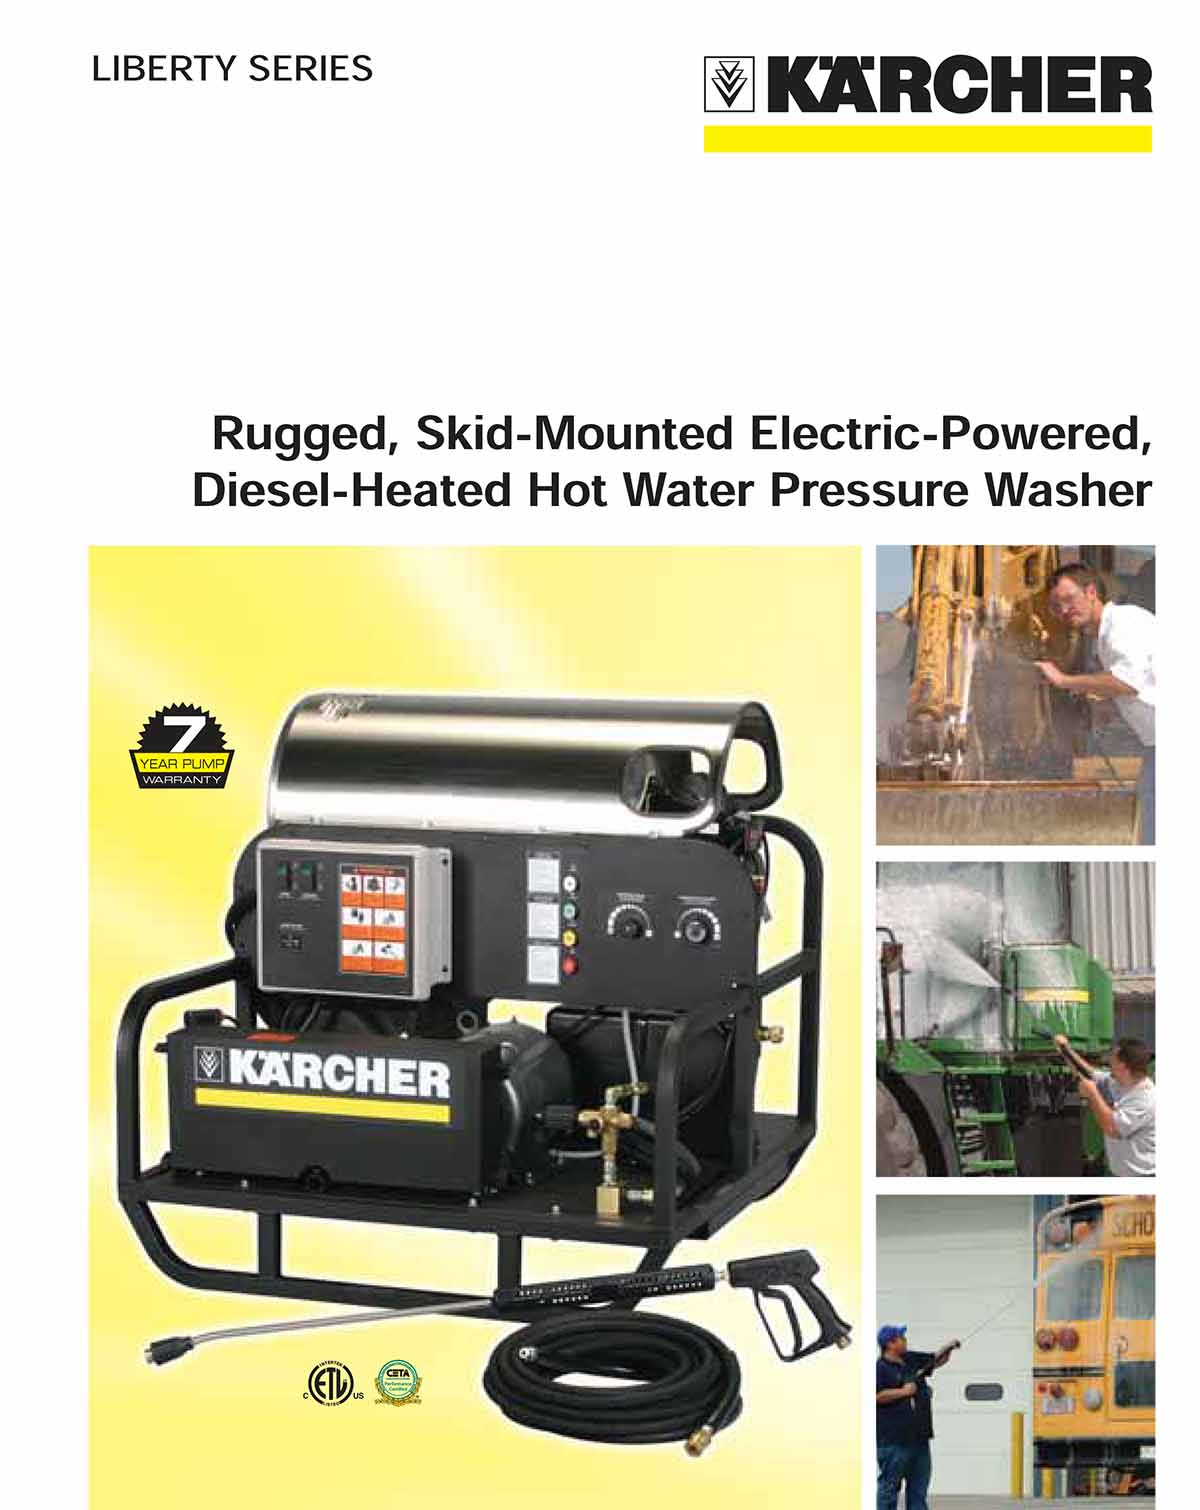 Karcher Liberty Series Hot Water Pressure Washer